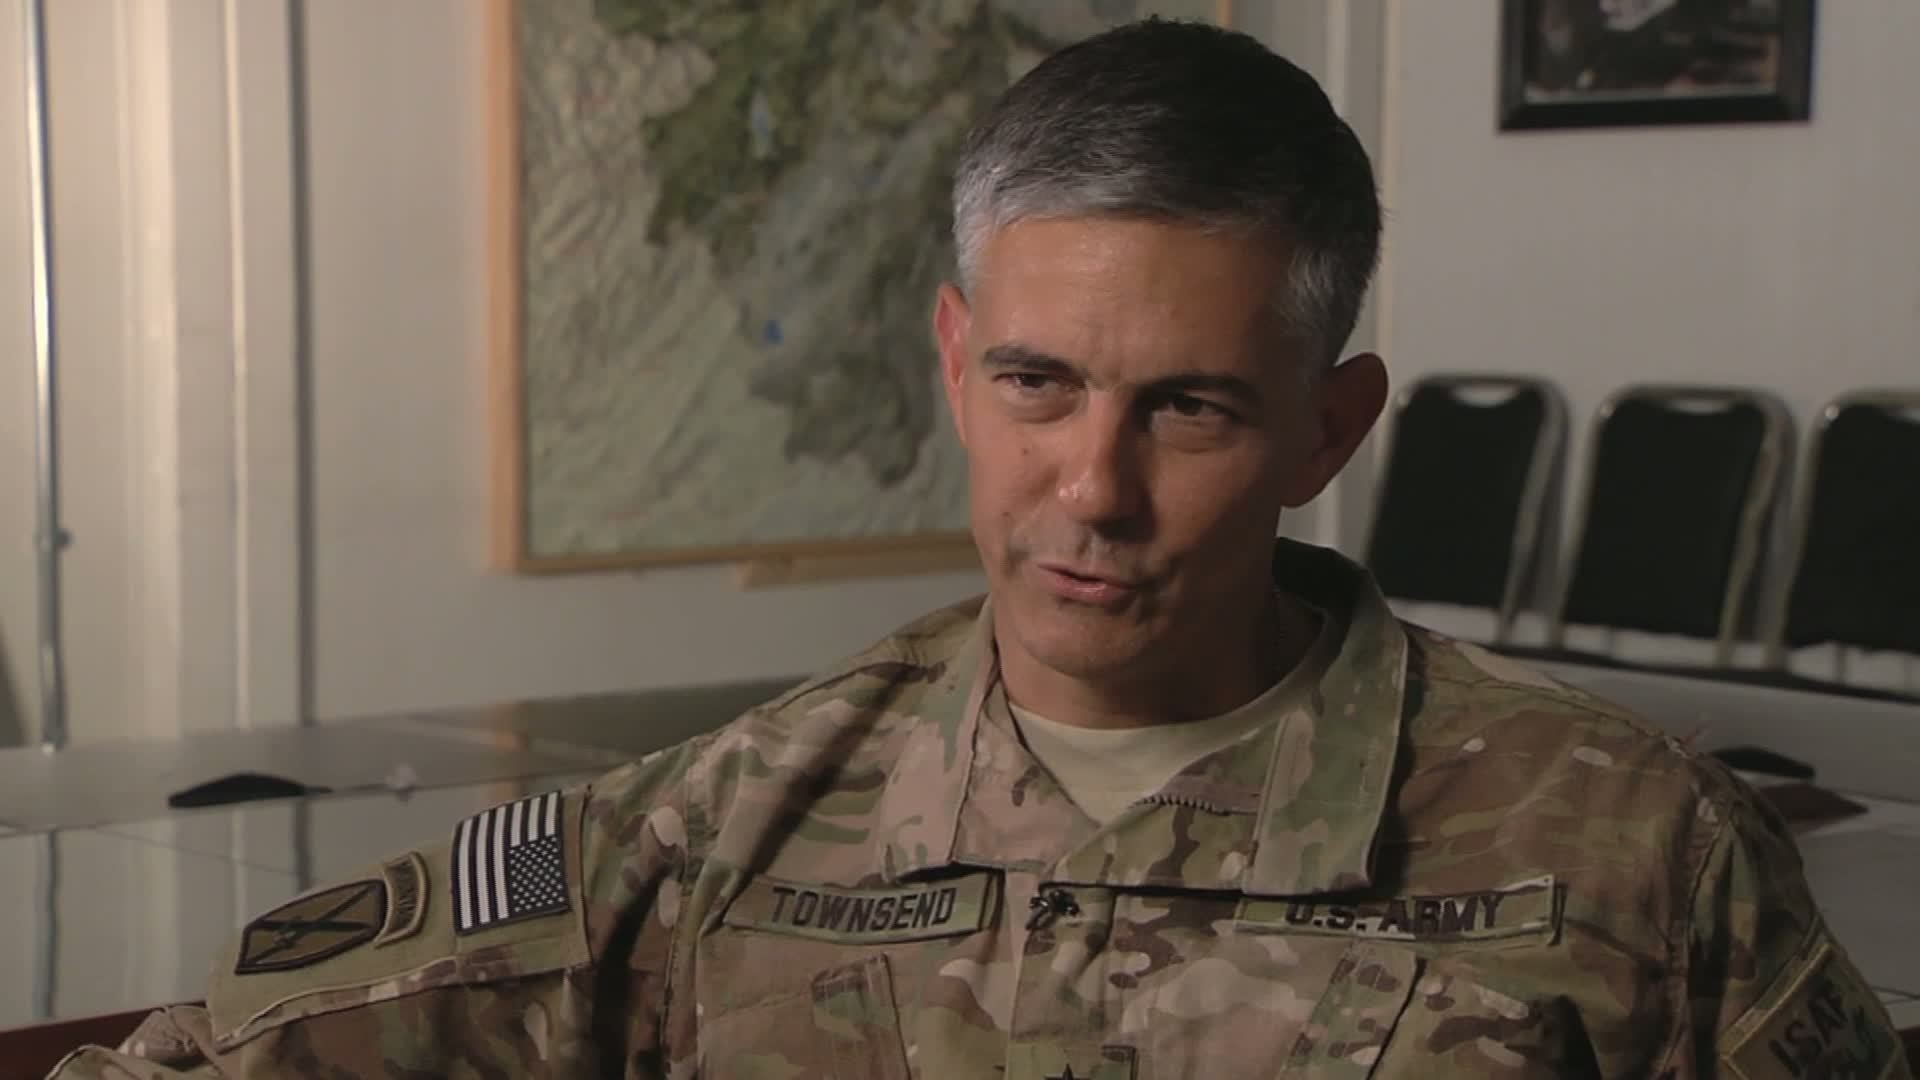 US General Townsend (Video caption courtesy of Defense Video Imagery Distribution System)